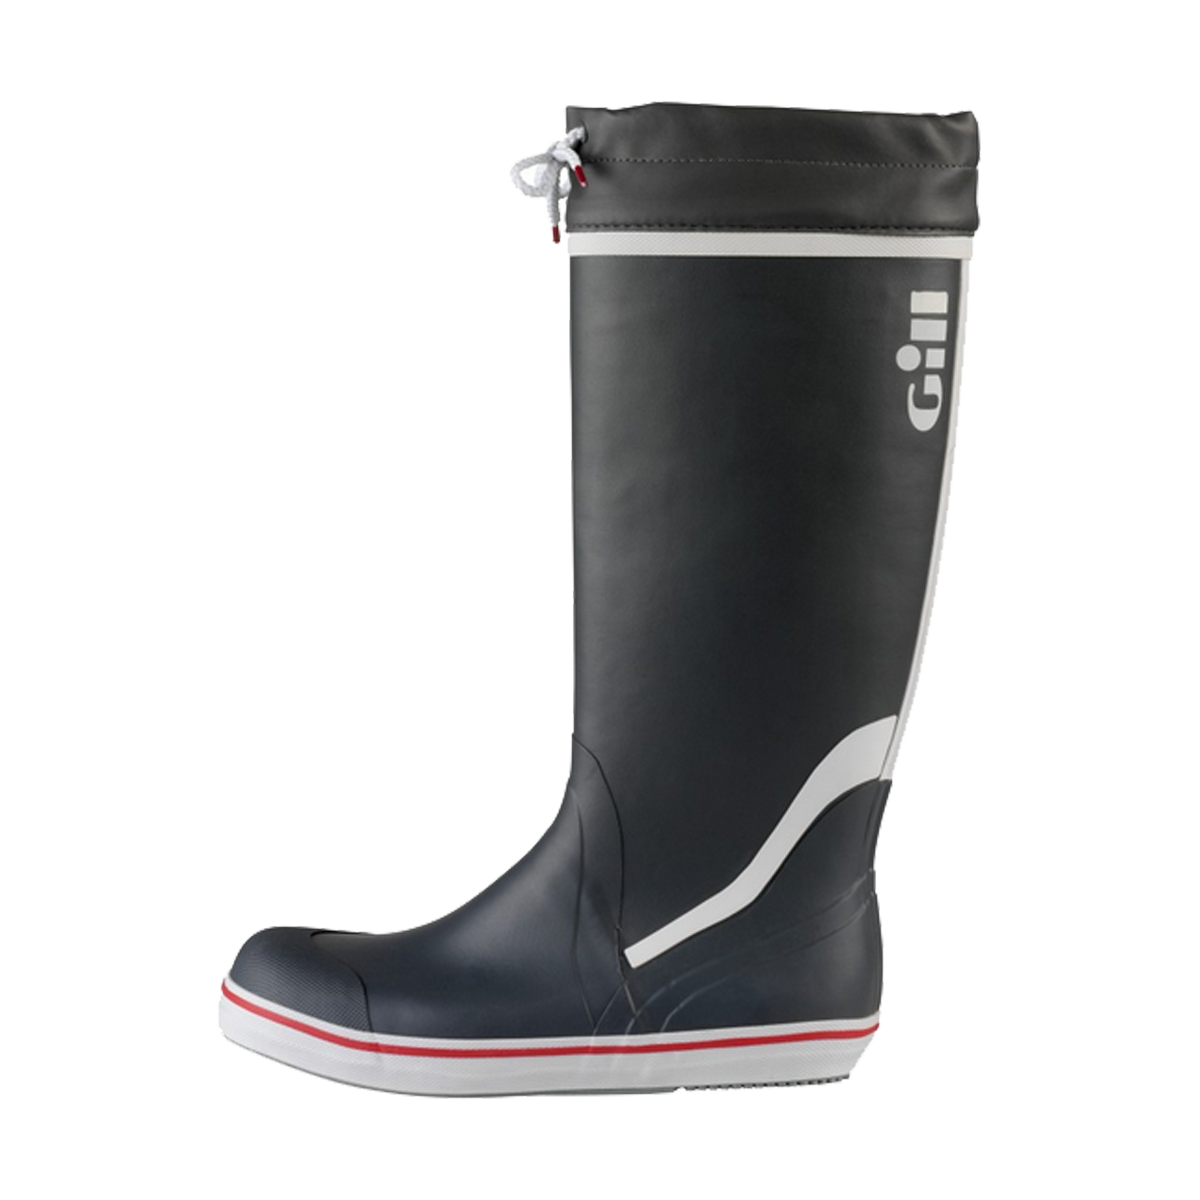 Yacht Uniform - Boots - Gill Yachting Boot